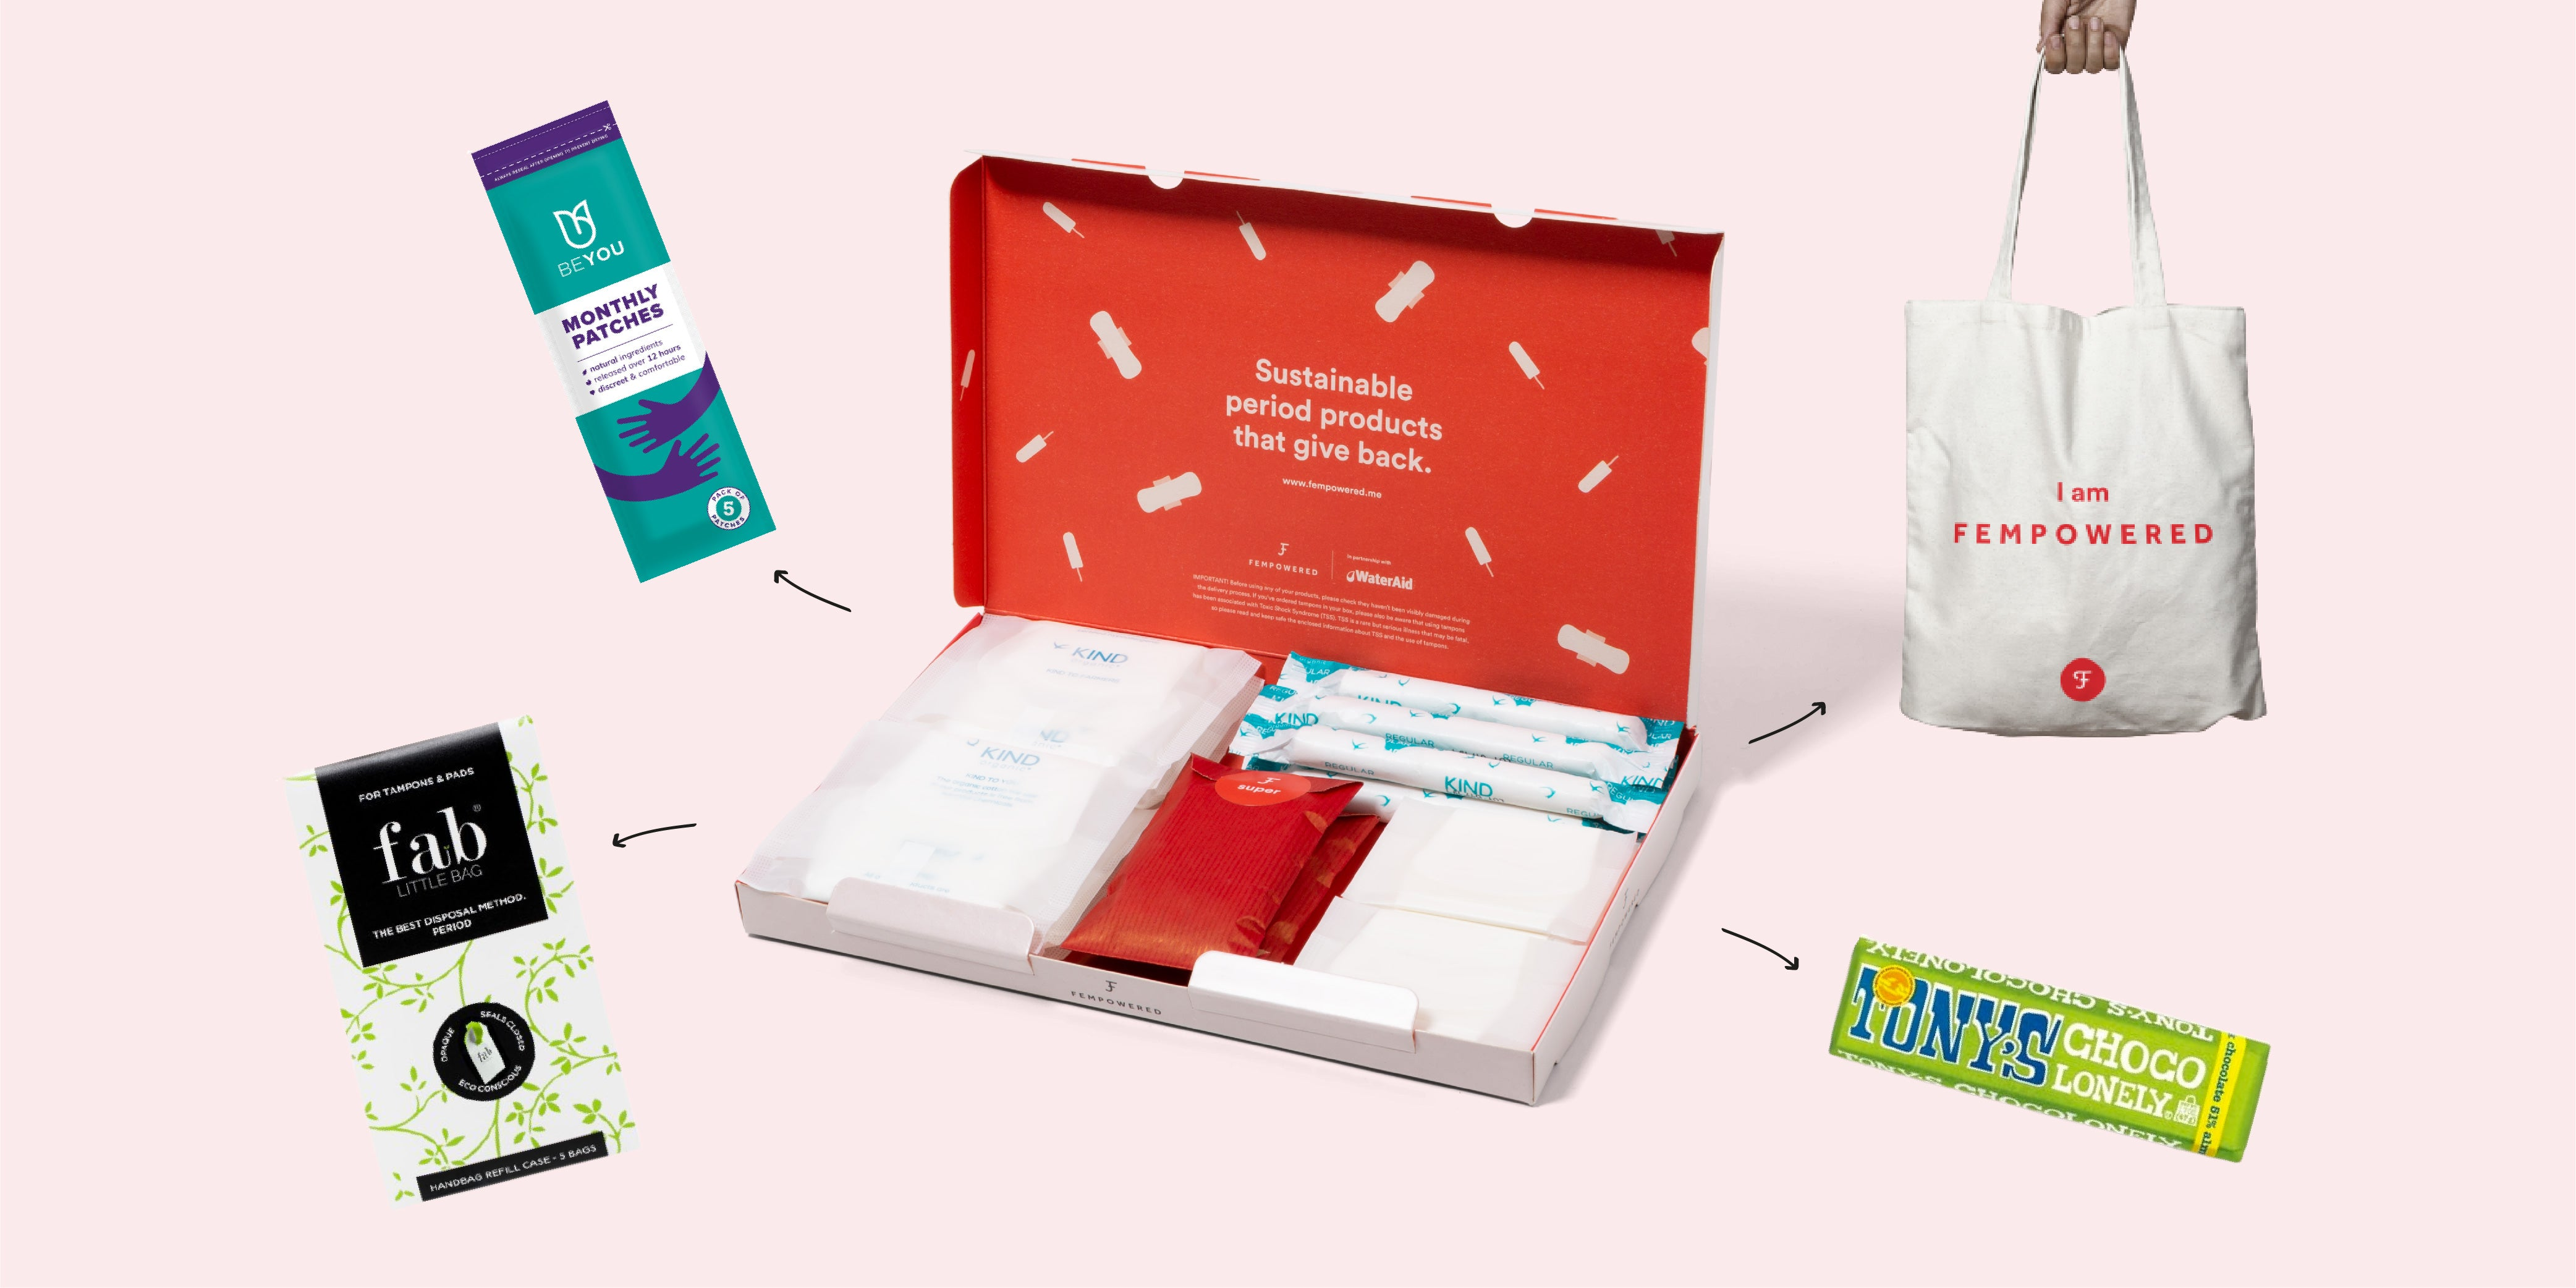 Flow On The Go kit from Fempowered